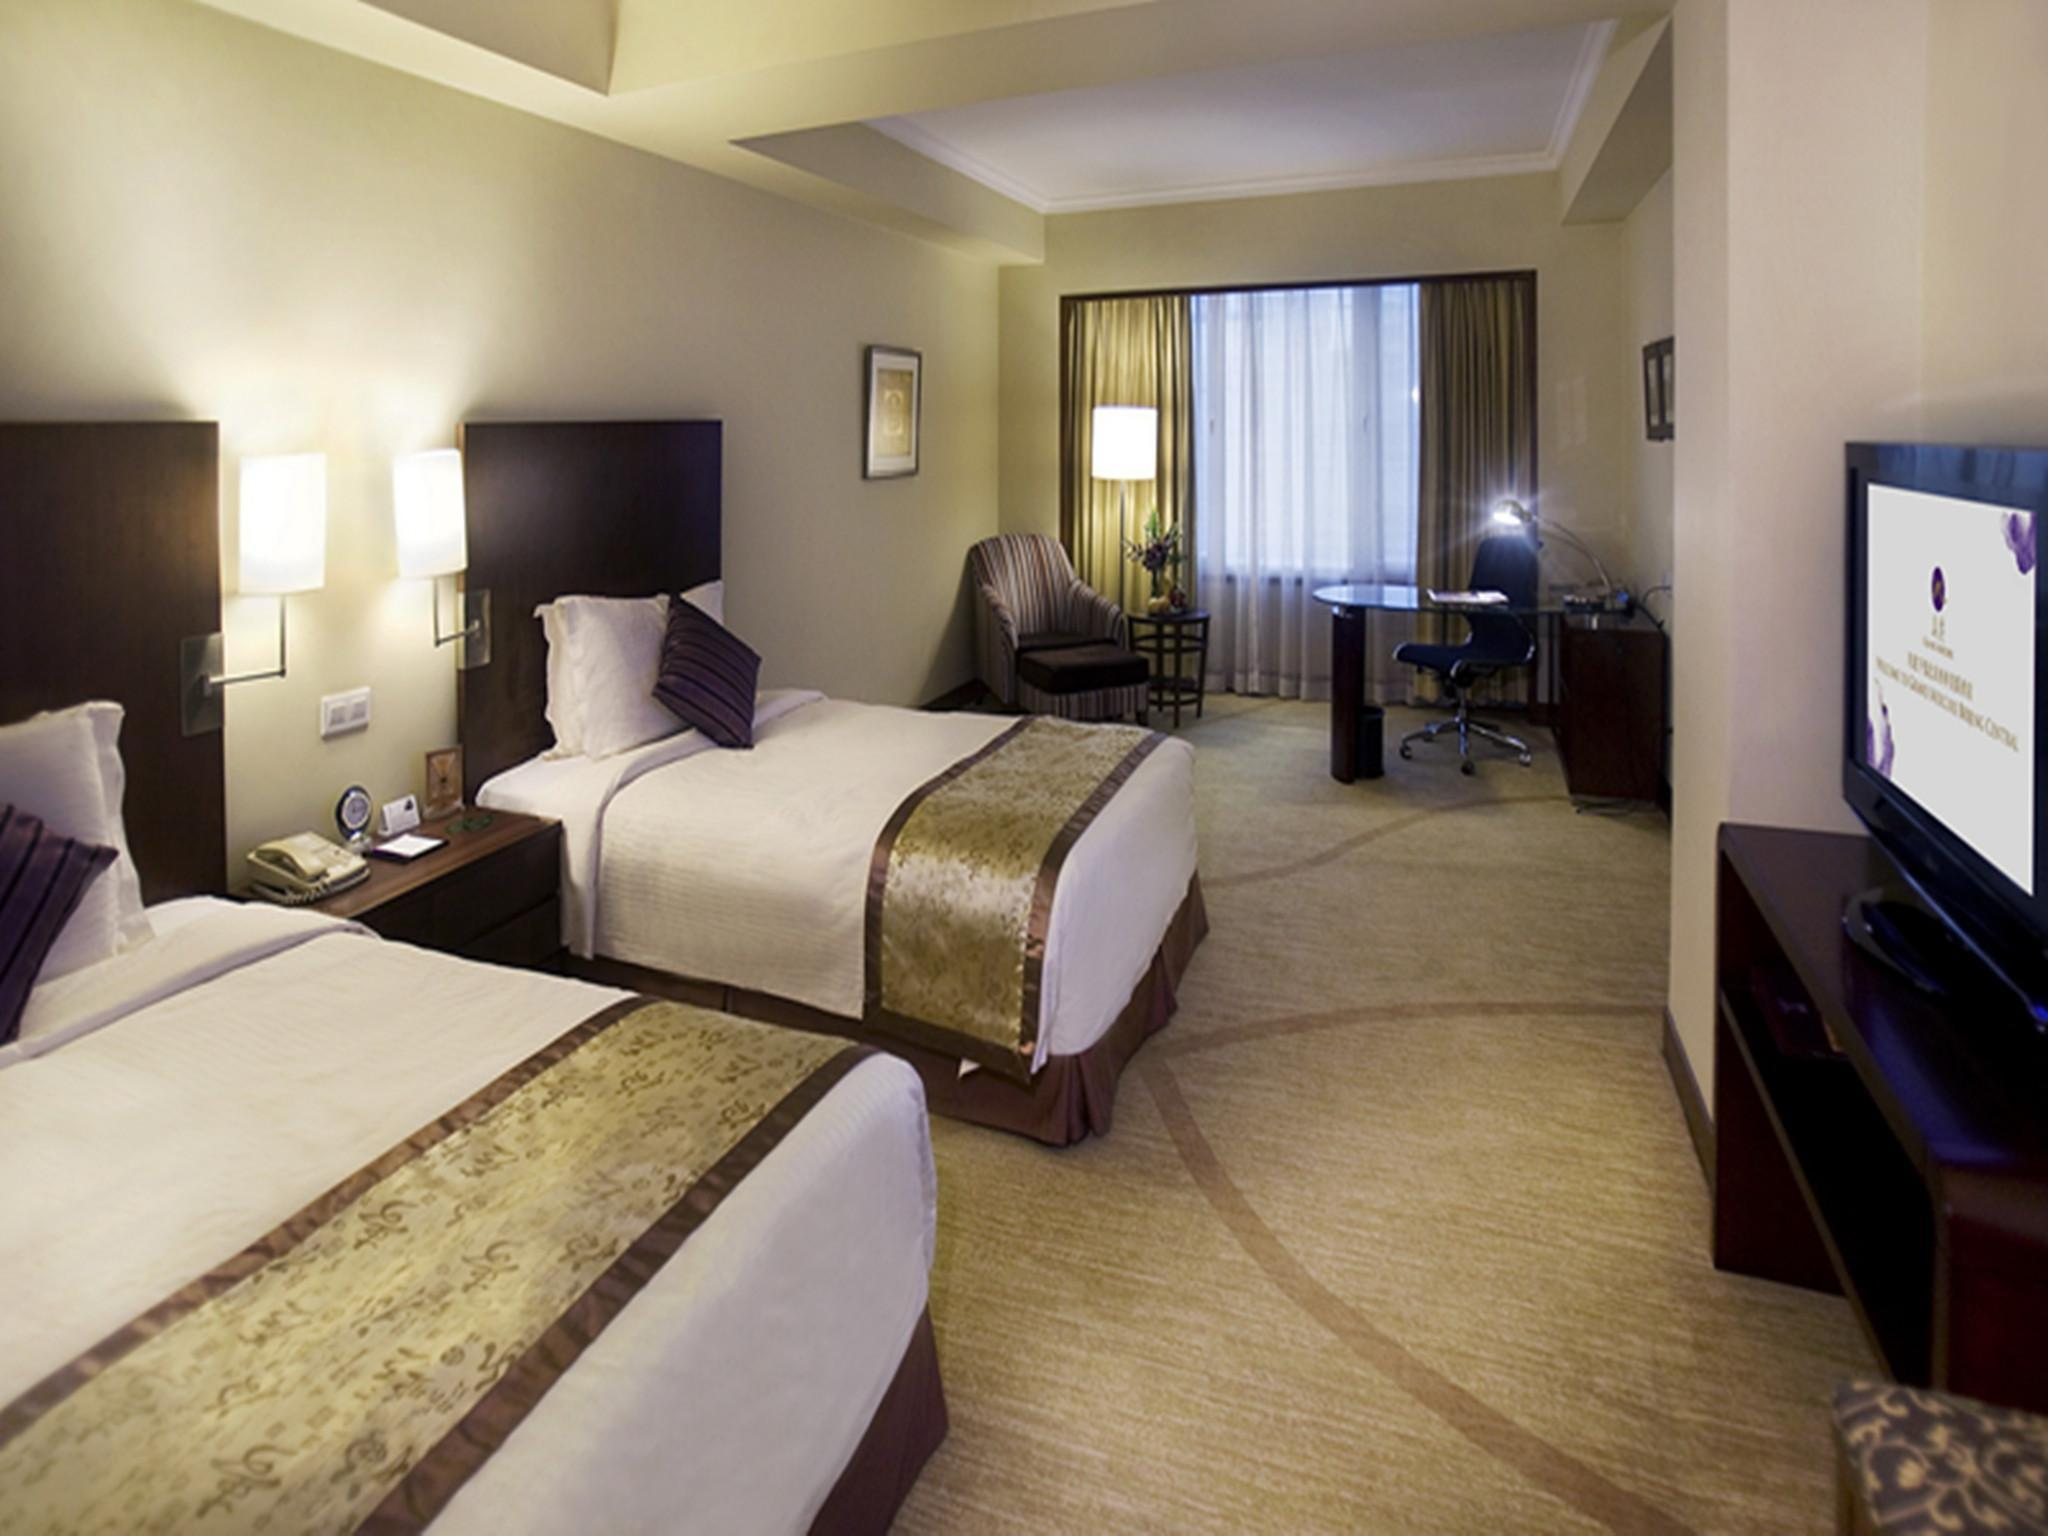 Executive Room With 2 Single Beds (Executive Room with 2 single beds)